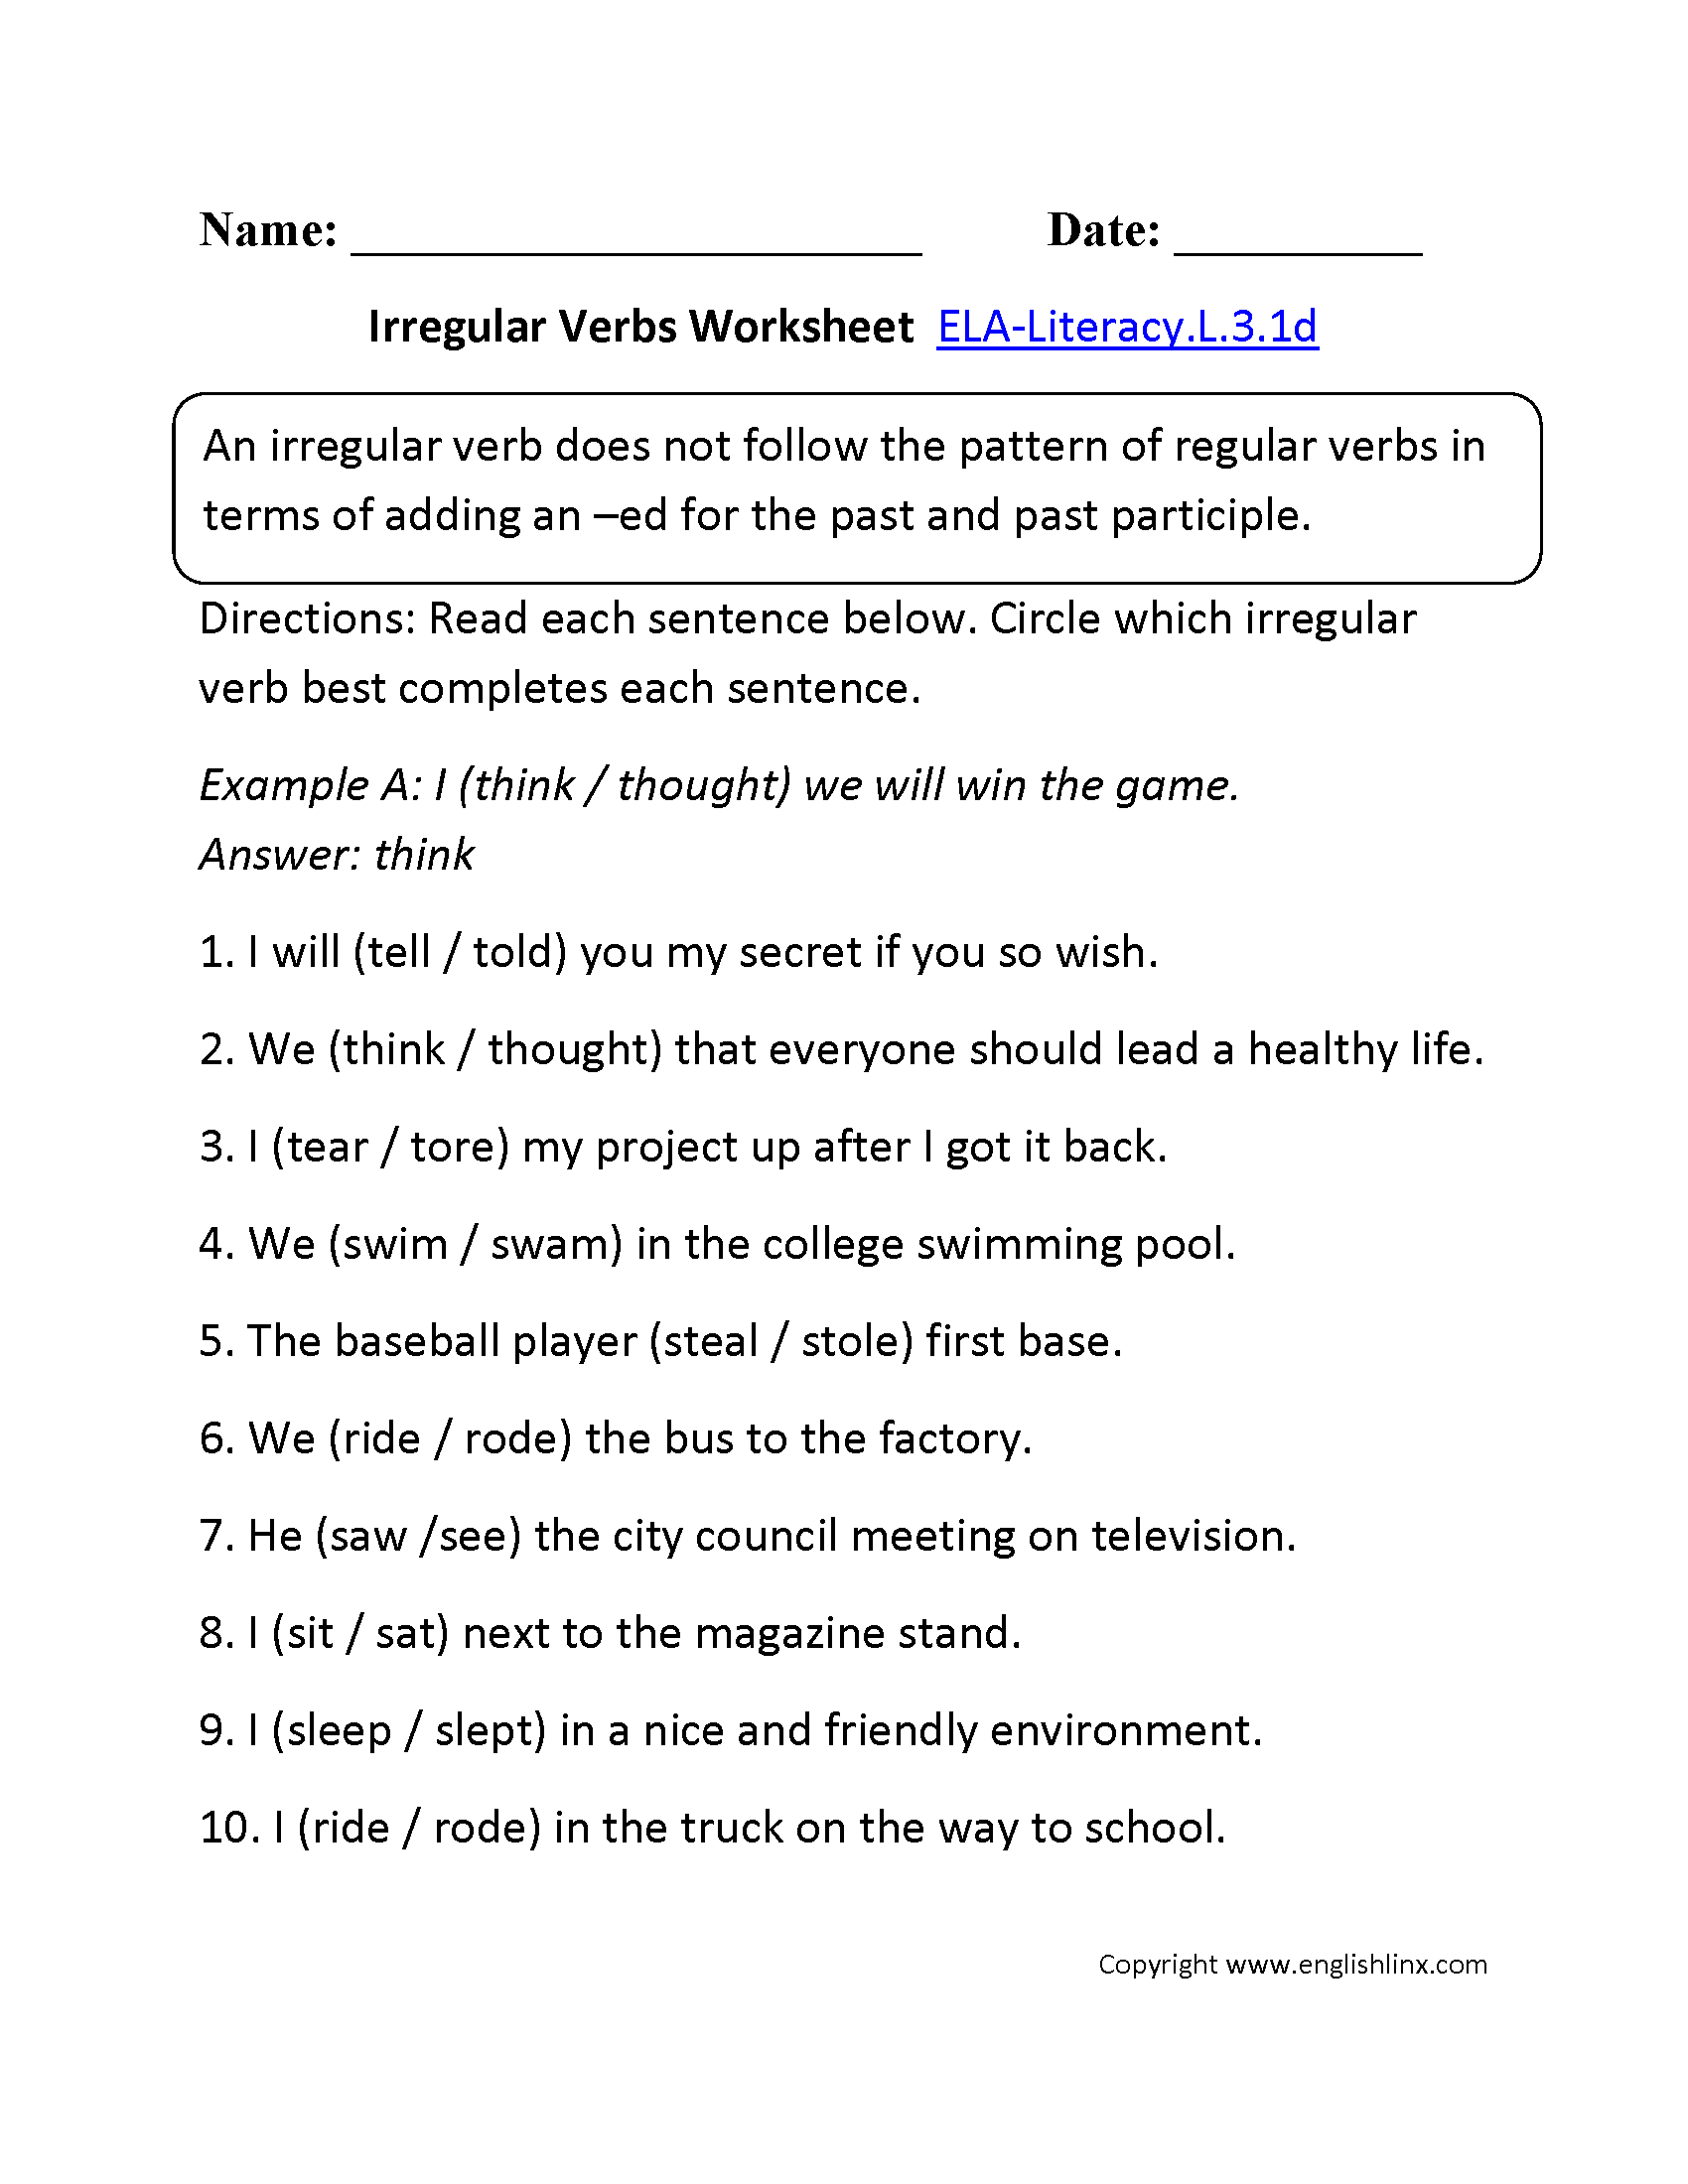 worksheet Verbs Ks1 Worksheet irregular verbs worksheet 1 ela literacy l 3 1d language english worksheets that are aligned to the grade common core standards for language